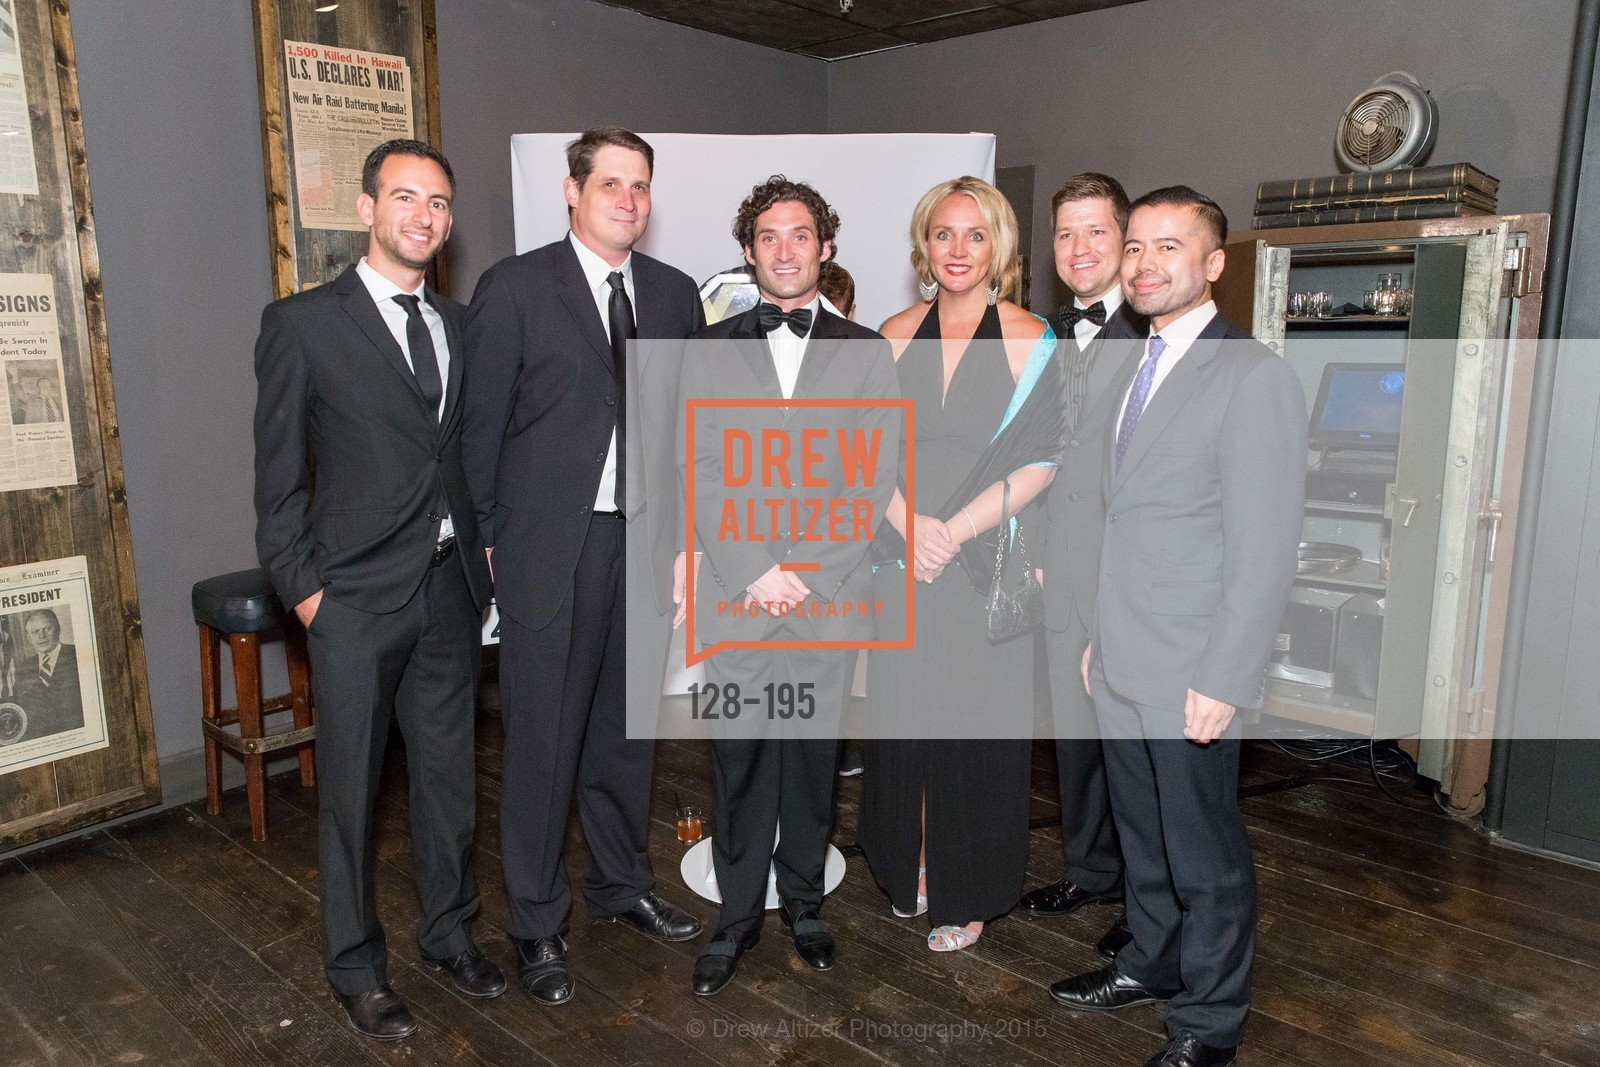 Jobe Danganan, Ori Zohar, Ginger Wilcox, Justin Fichelson, Brad Lensing, Matt Murphy, Climb Real Estate and Sindeo Celebrate the Launch of Million Dollar Listing San Francisco, Local Edition San Francisco. 691 Market St, July 8th, 2015,Drew Altizer, Drew Altizer Photography, full-service agency, private events, San Francisco photographer, photographer california